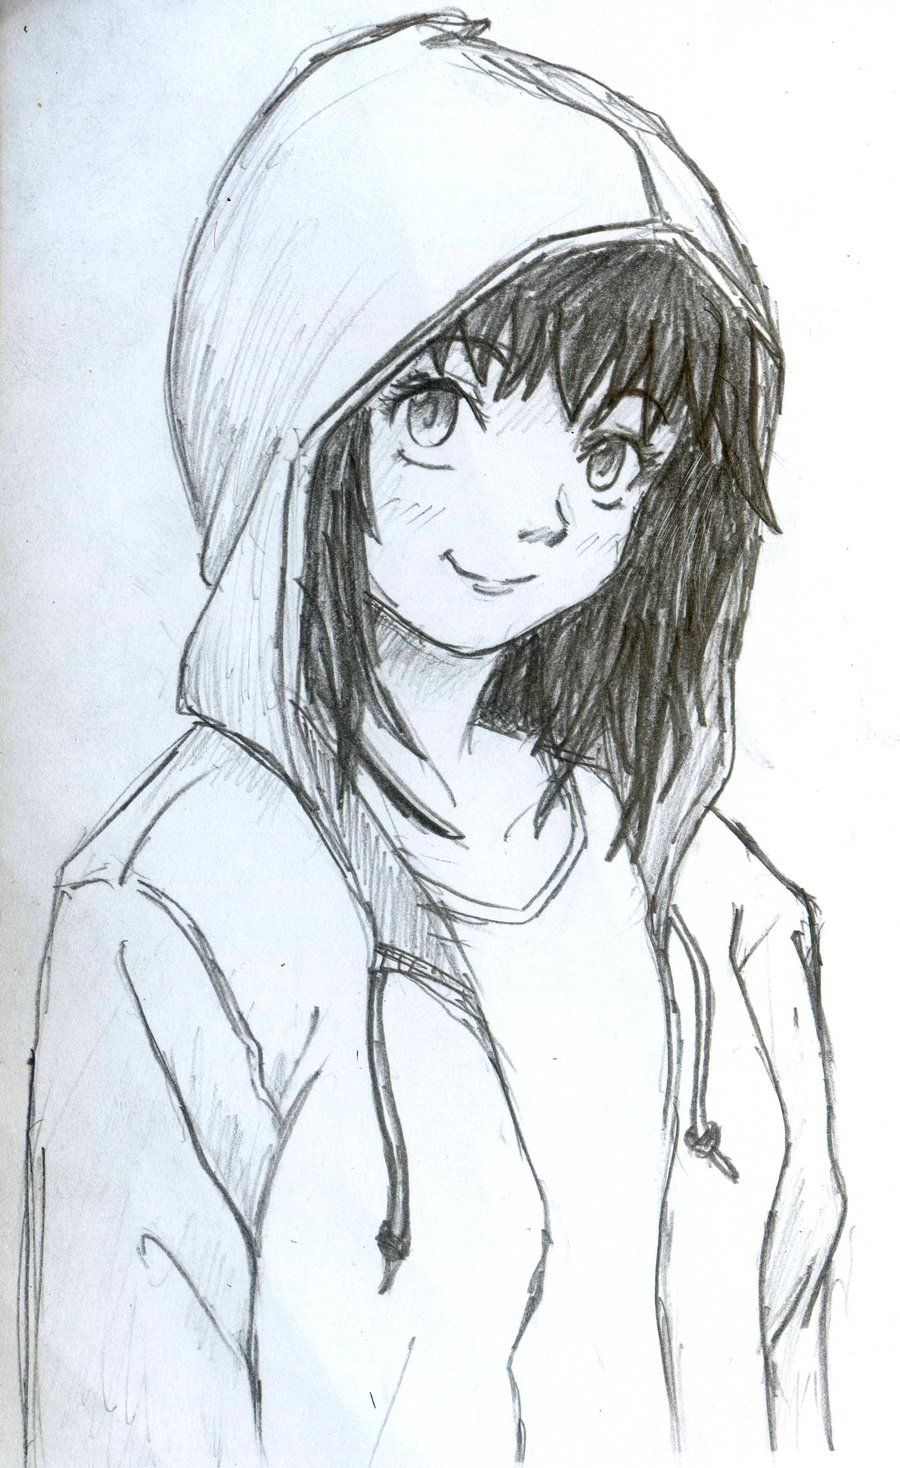 Hoodie girl by diyanahnadzree on deviantart how to draw hoodies manga drawing drawing tips